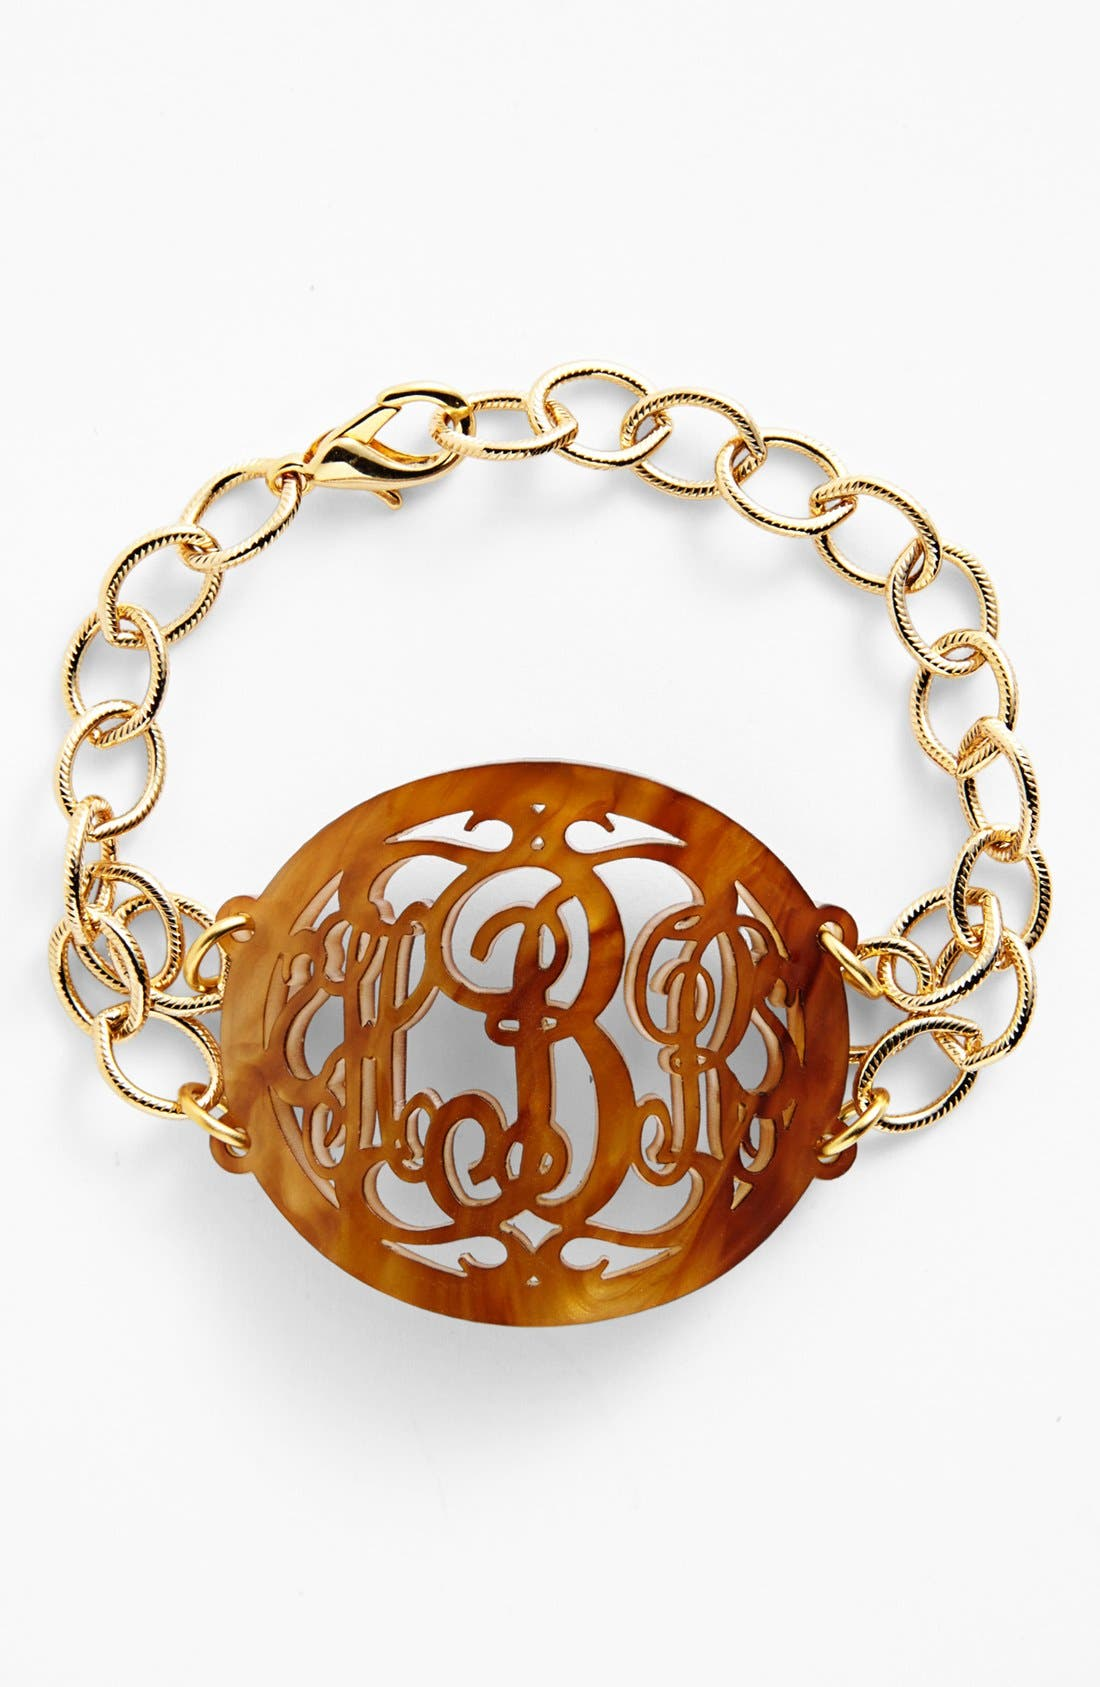 Main Image - Moon and Lola 'Annabel' Large Oval Personalized Monogram Bracelet (Nordstrom Exclusive)